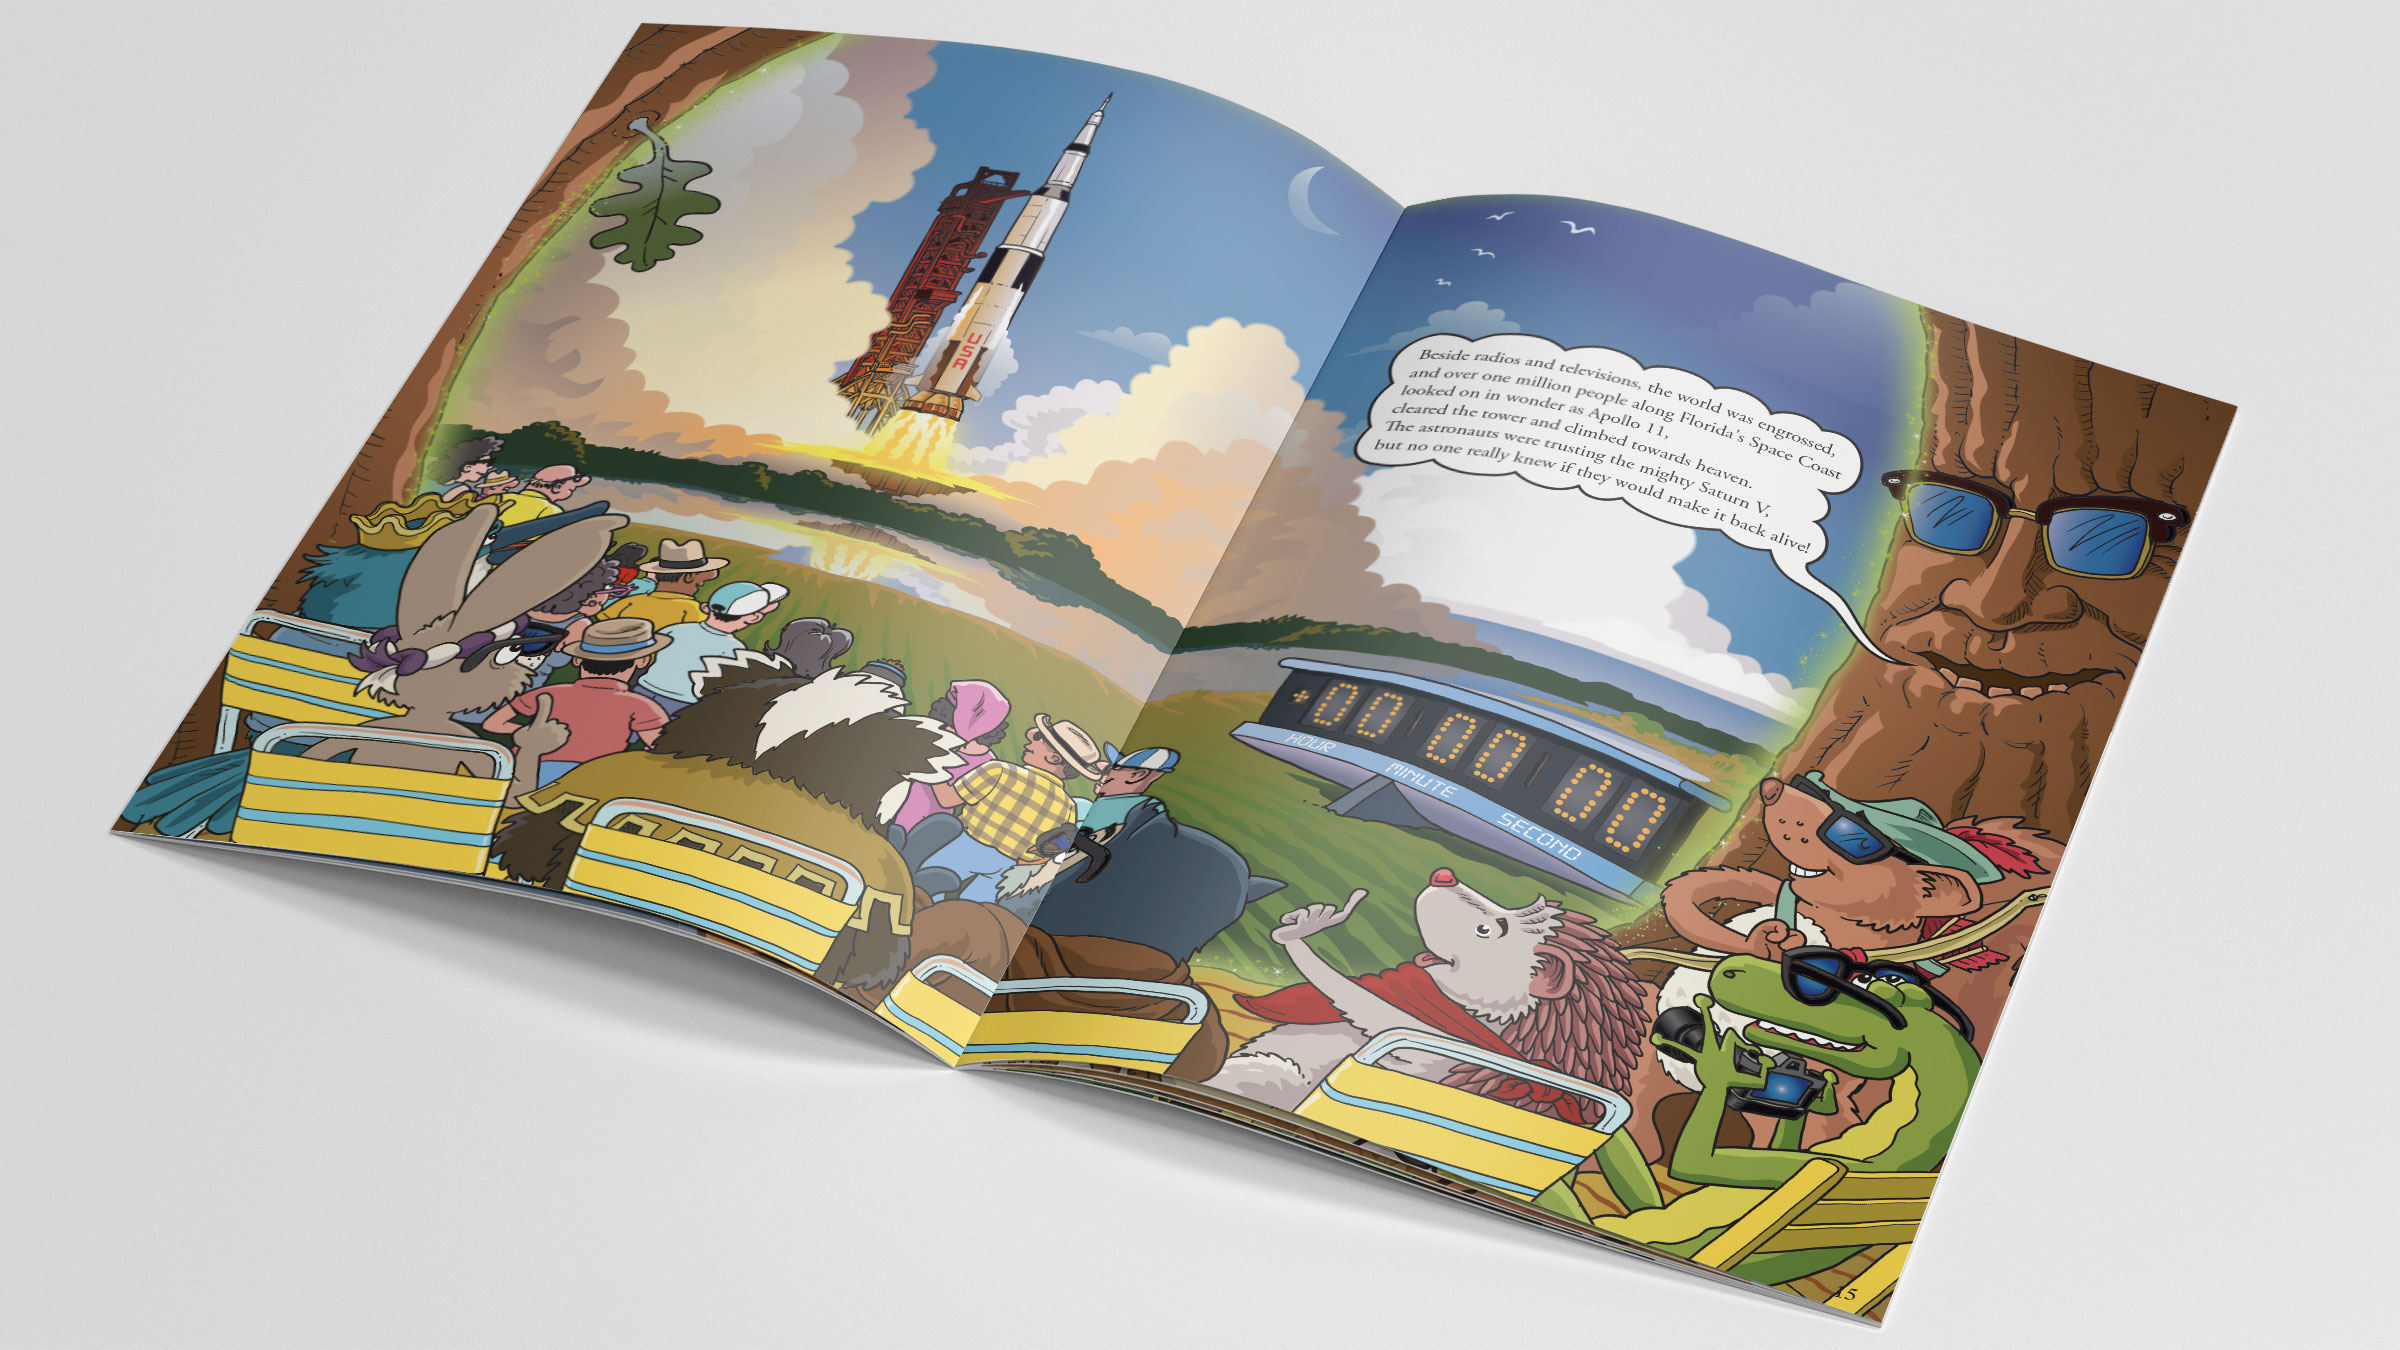 A sample spread from Robin Hood's Little Outlaws' third book, Race to the Moon